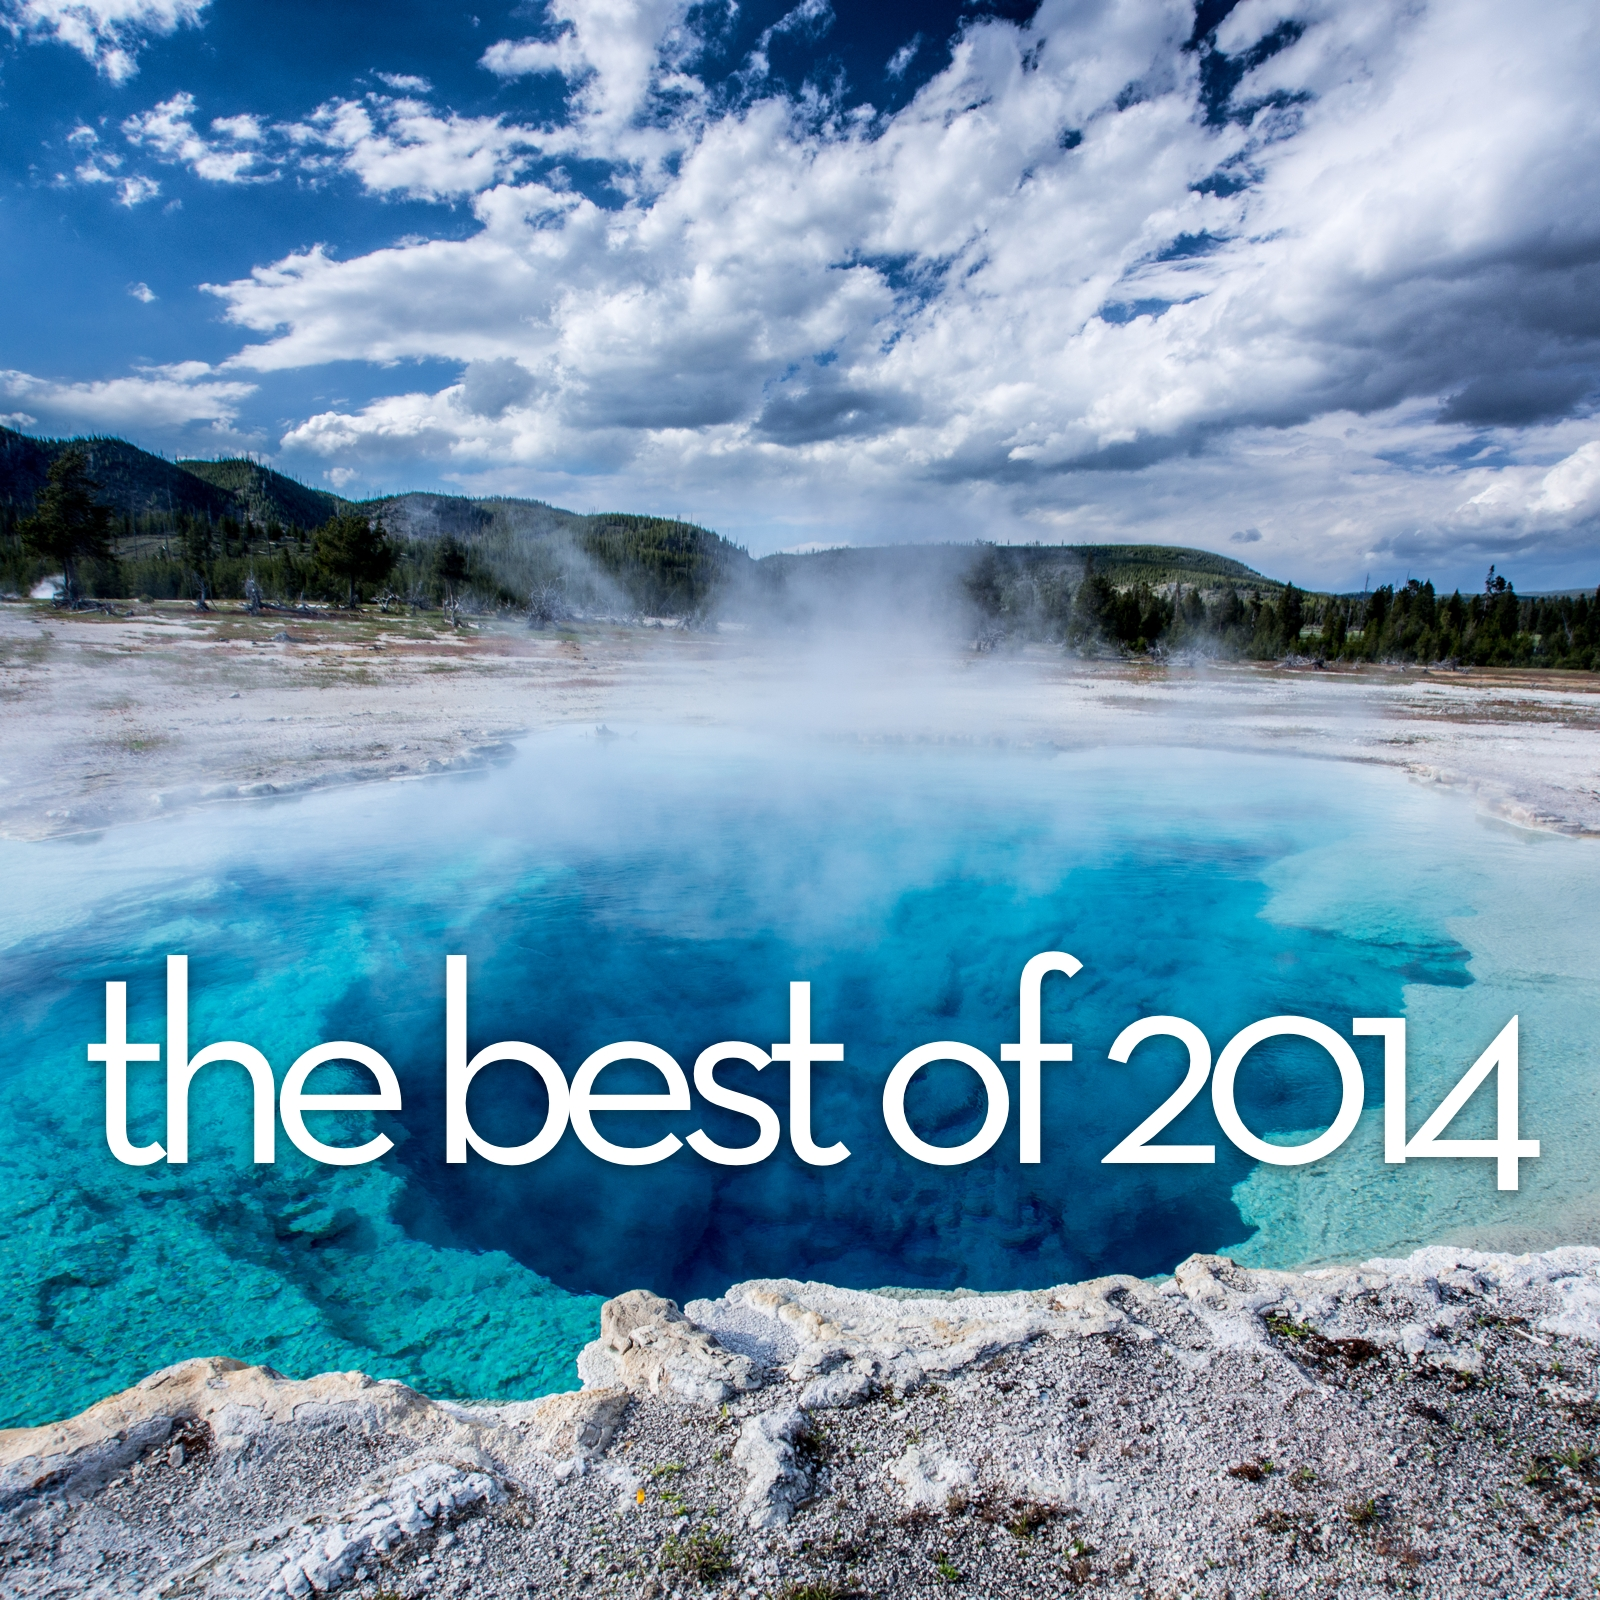 Sapphire Pool, Yellowstone National Park  © Evan Troxel – All Rights Reserved